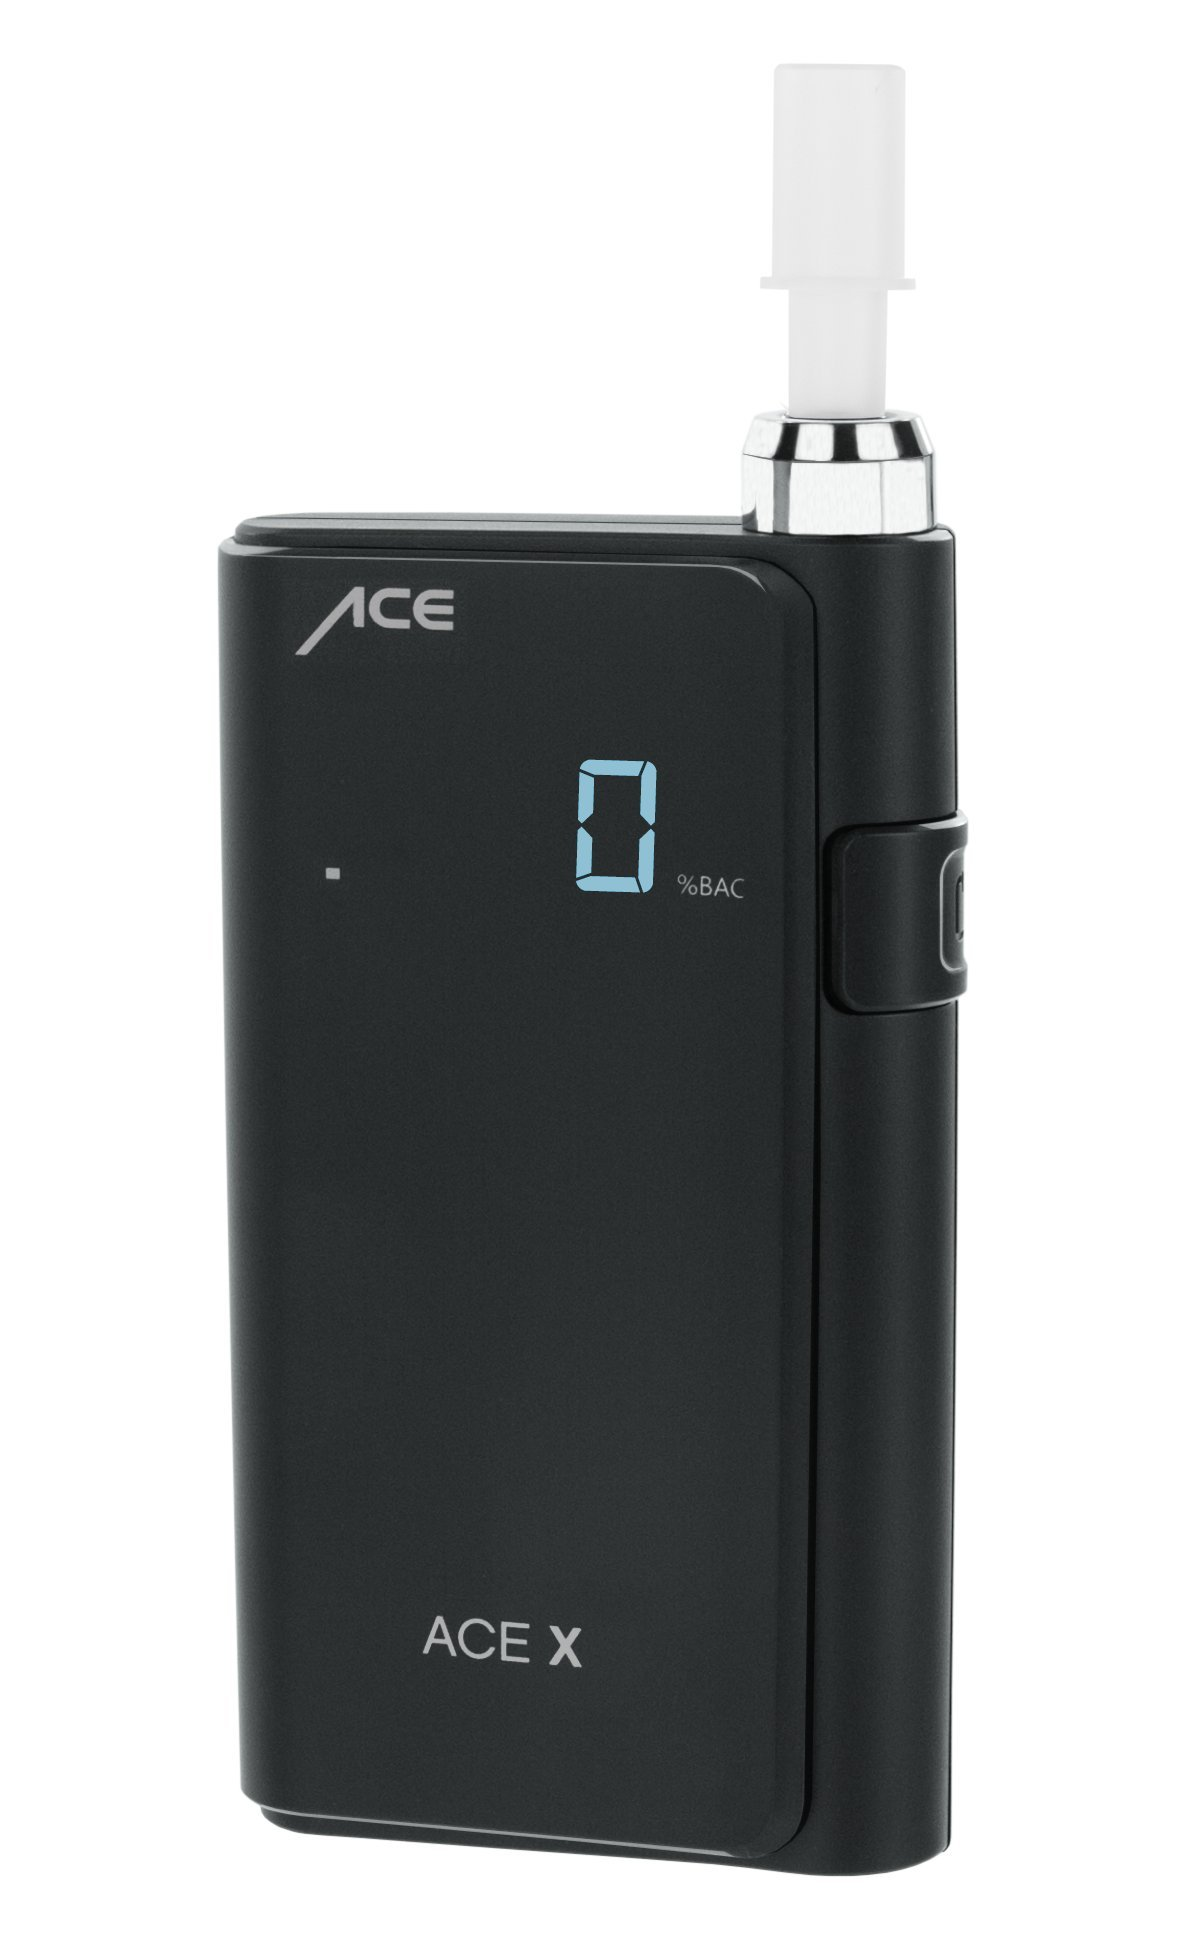 ACE X Portable Breathalyzer Professional Grade Fuel Cell with Digital Display and 5 Mouthpieces